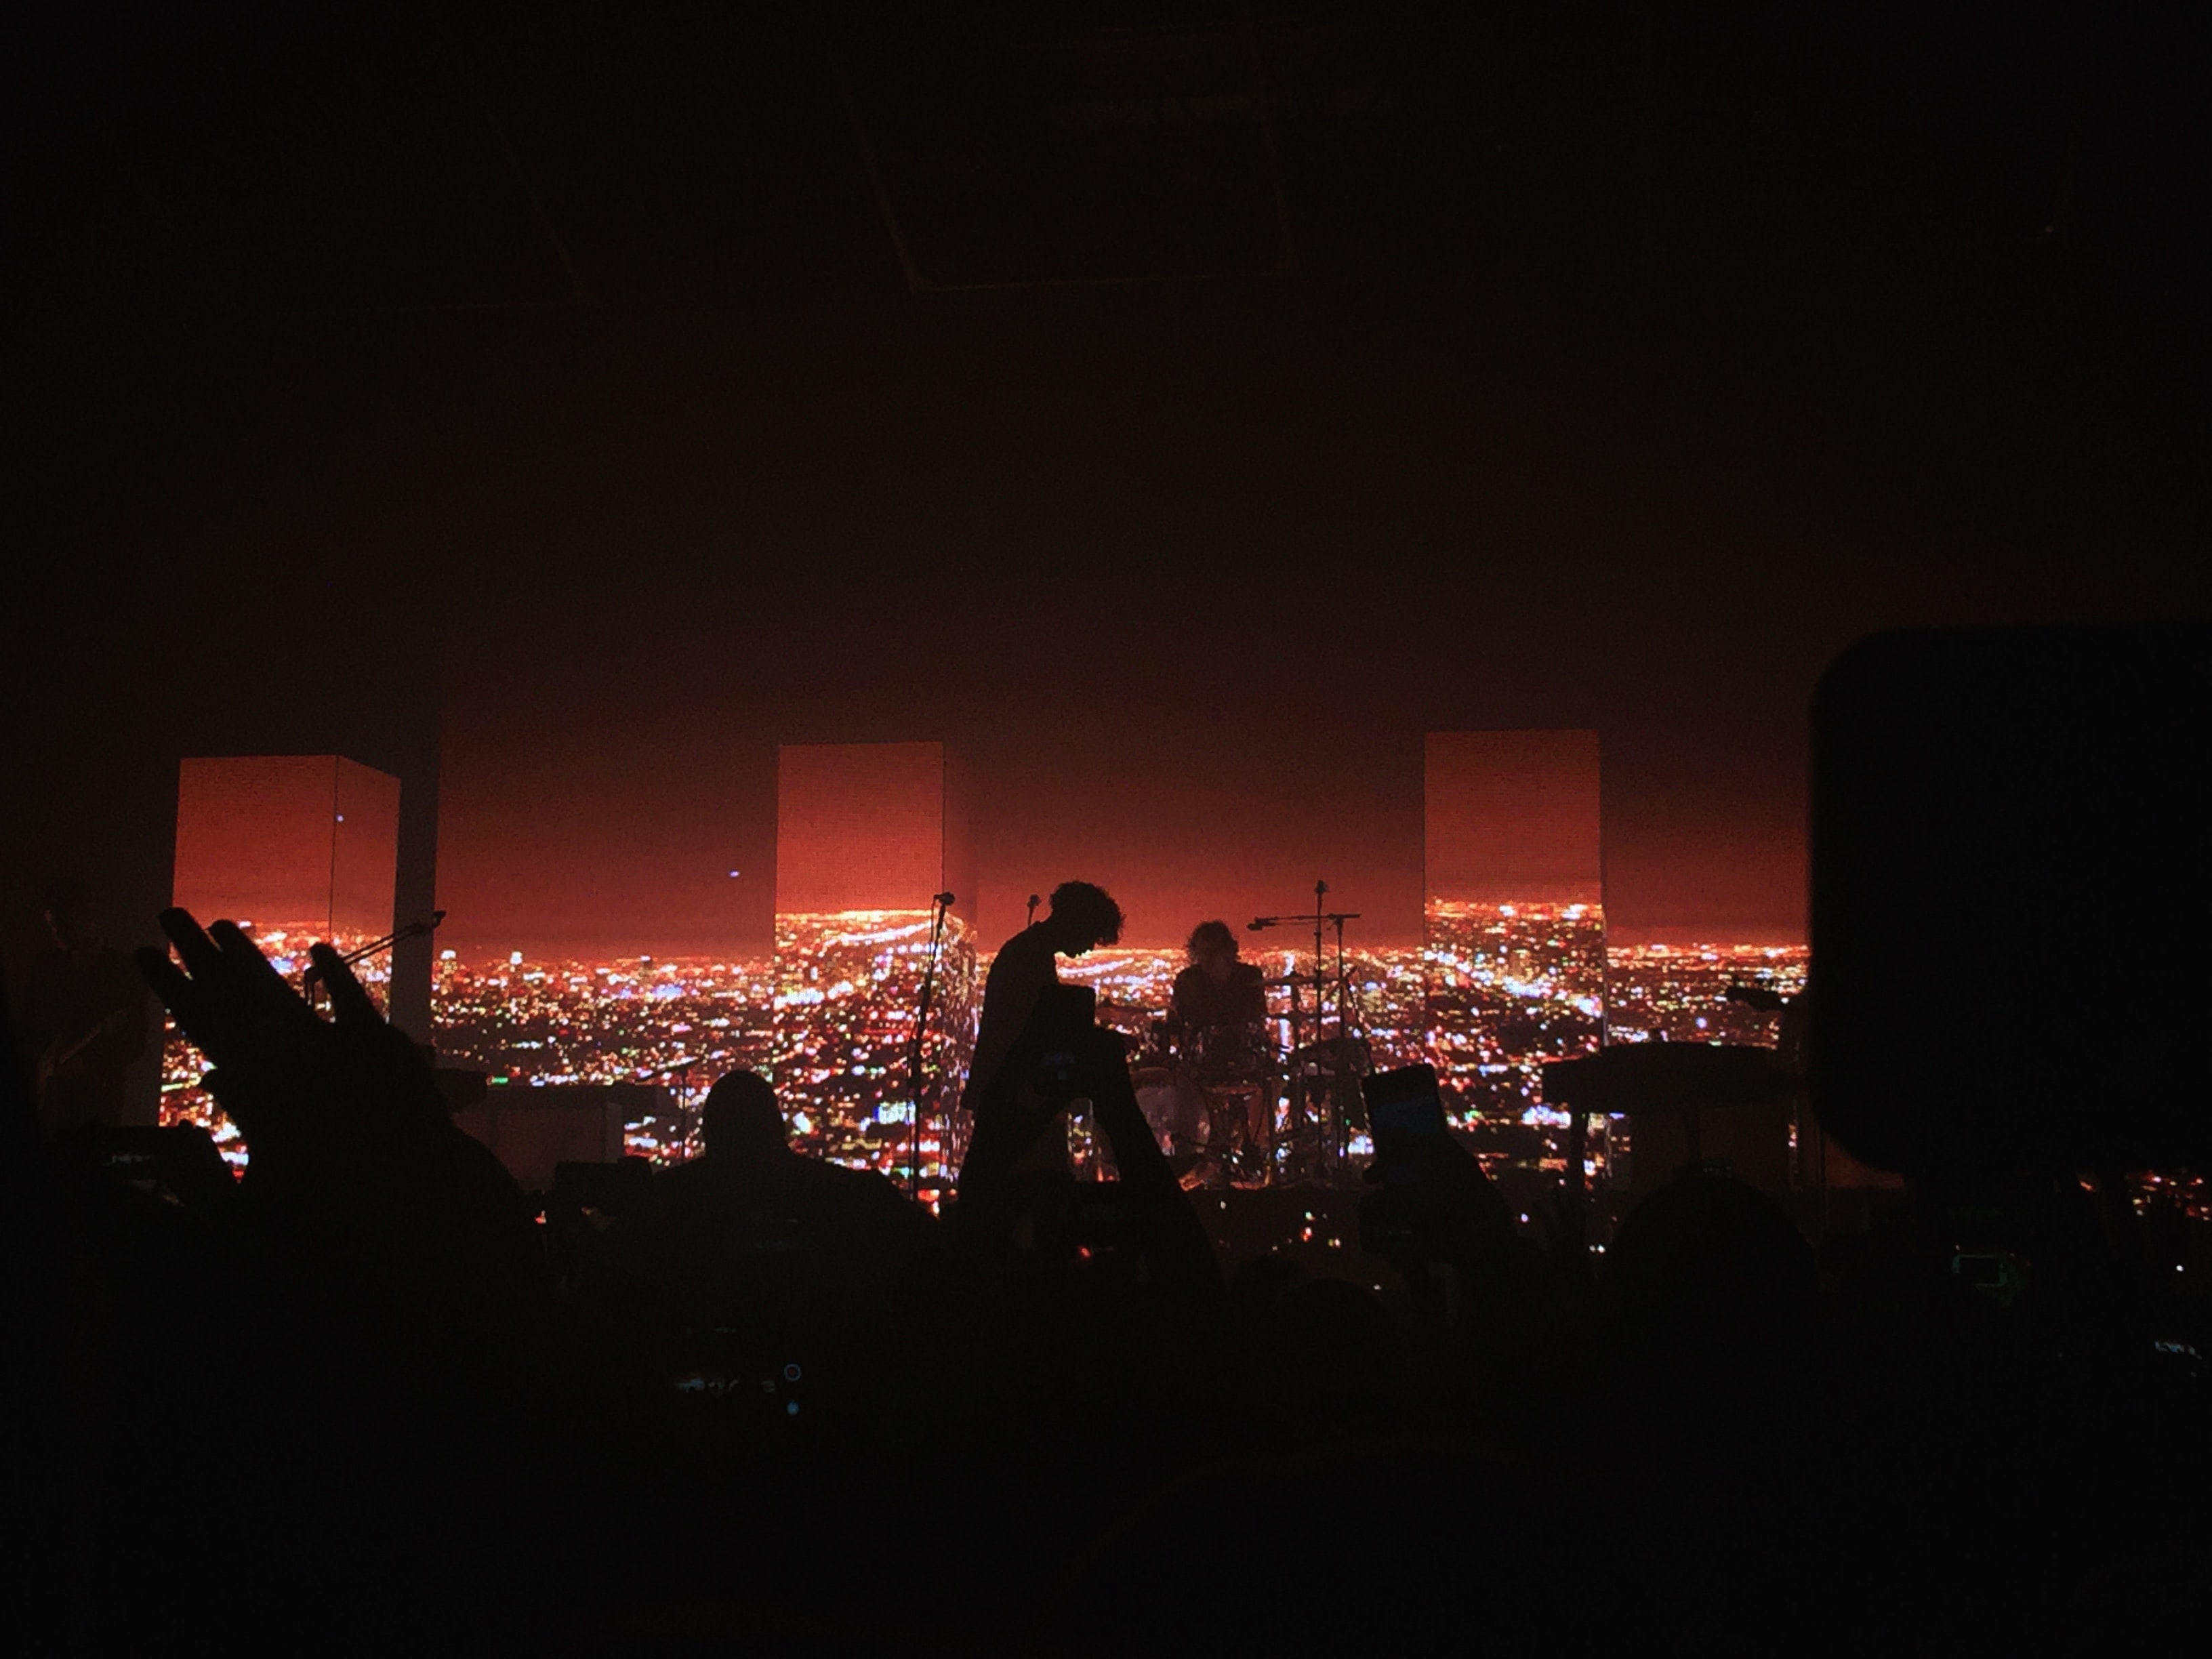 Dark concert venue with silhouetted audience and band in front of red cityscape